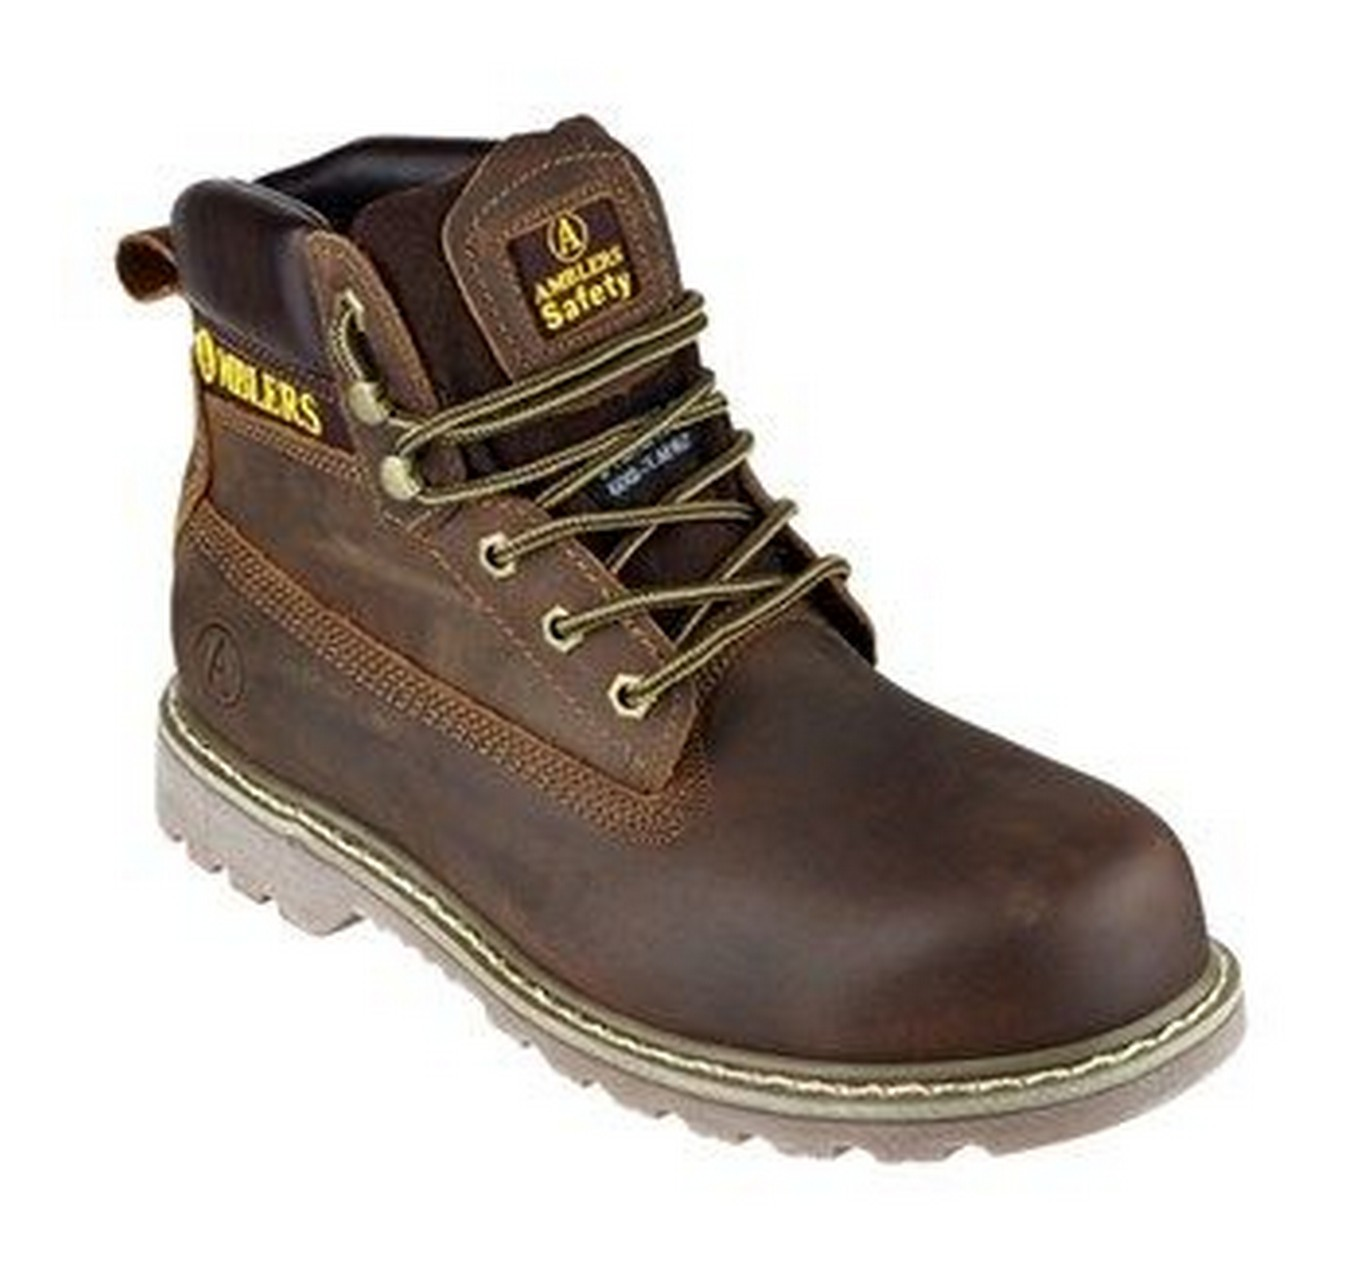 Safety Boot Amblers Fs164 4